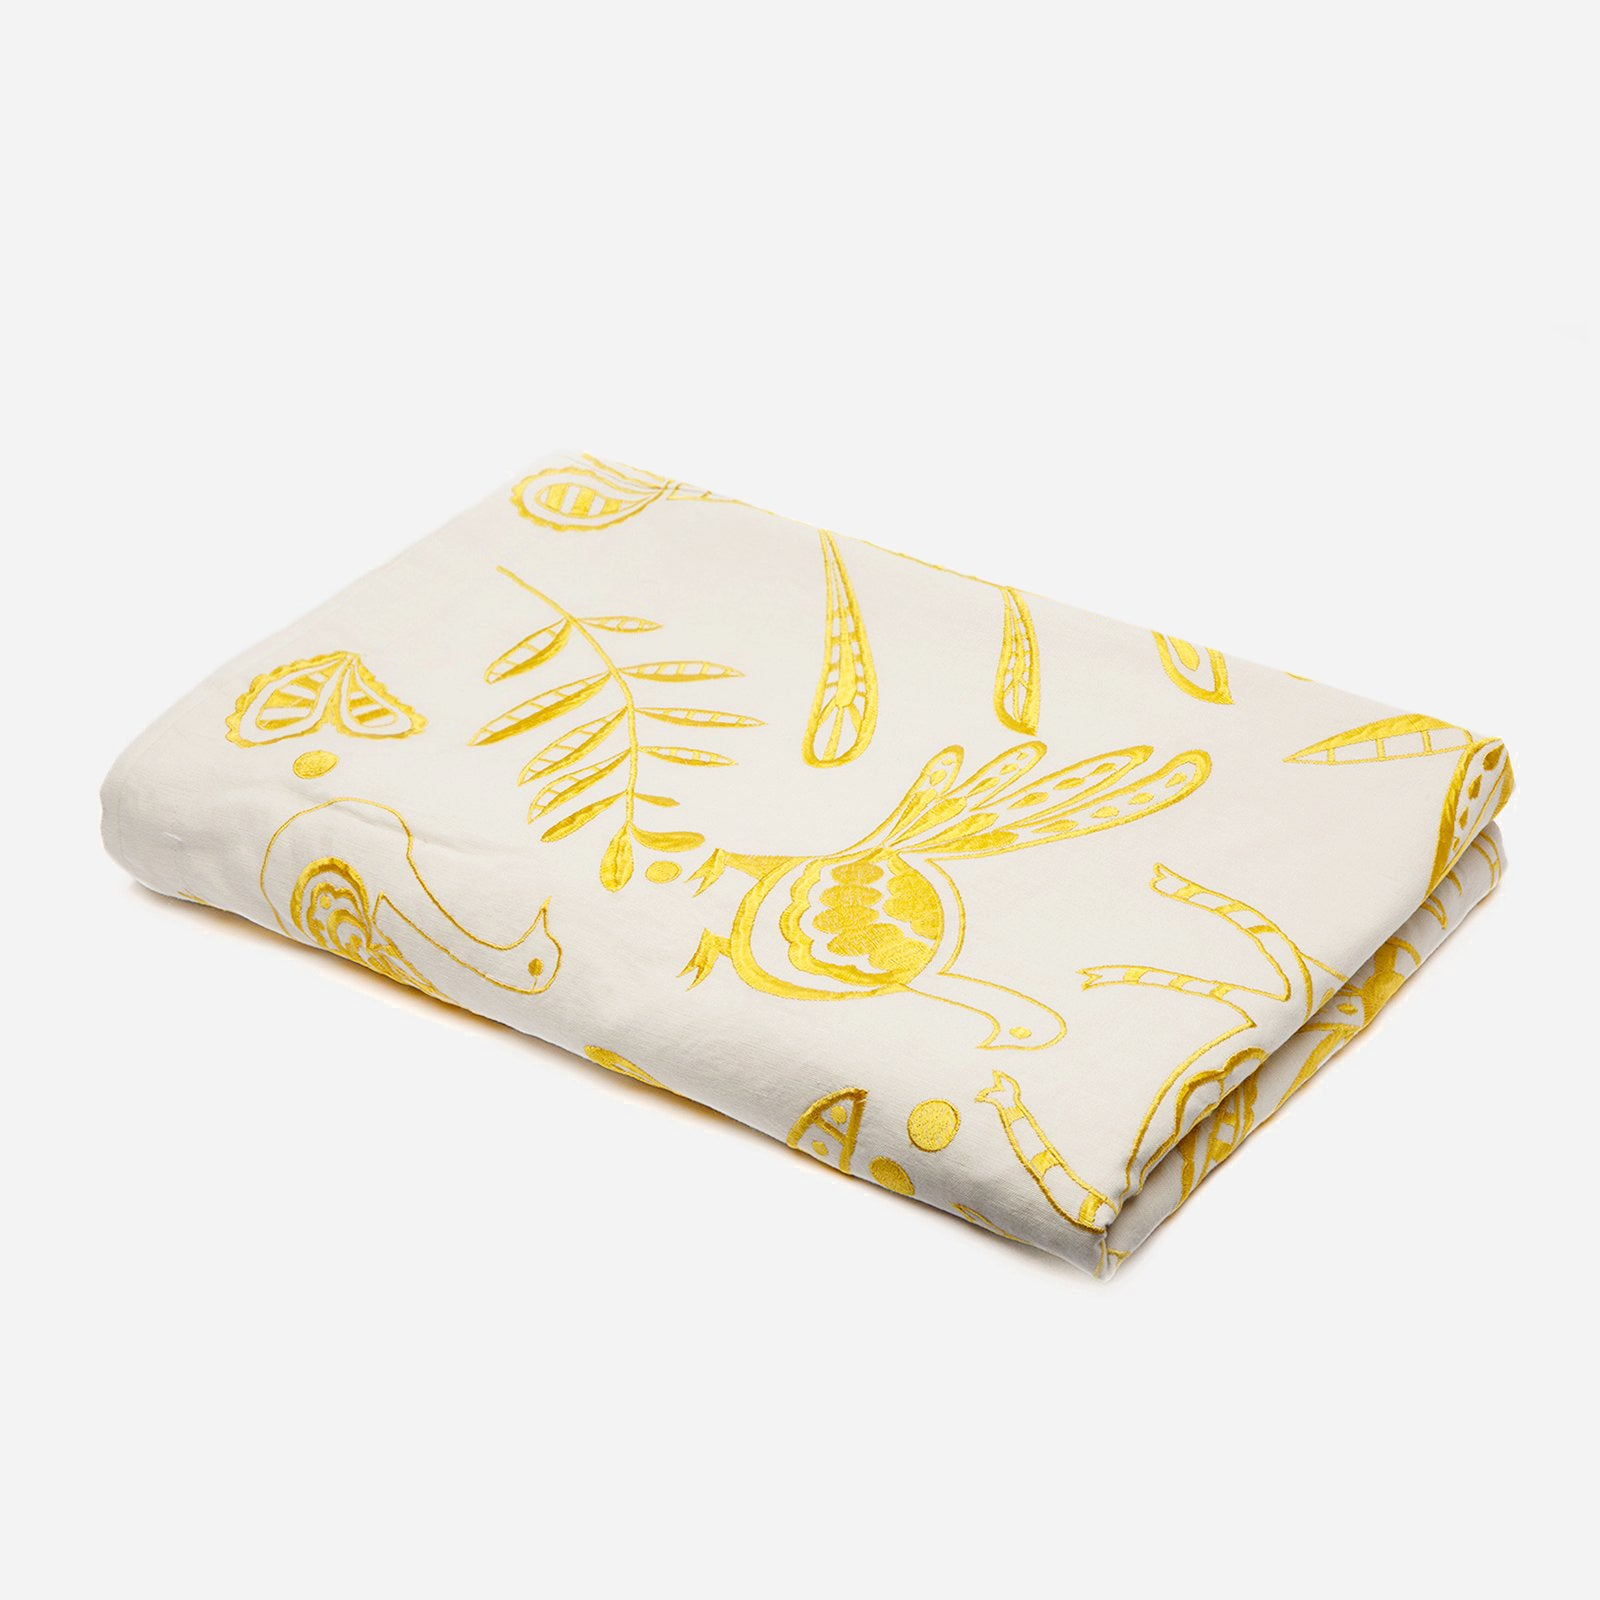 Veracruz Embroidered Tablecloth Yellow